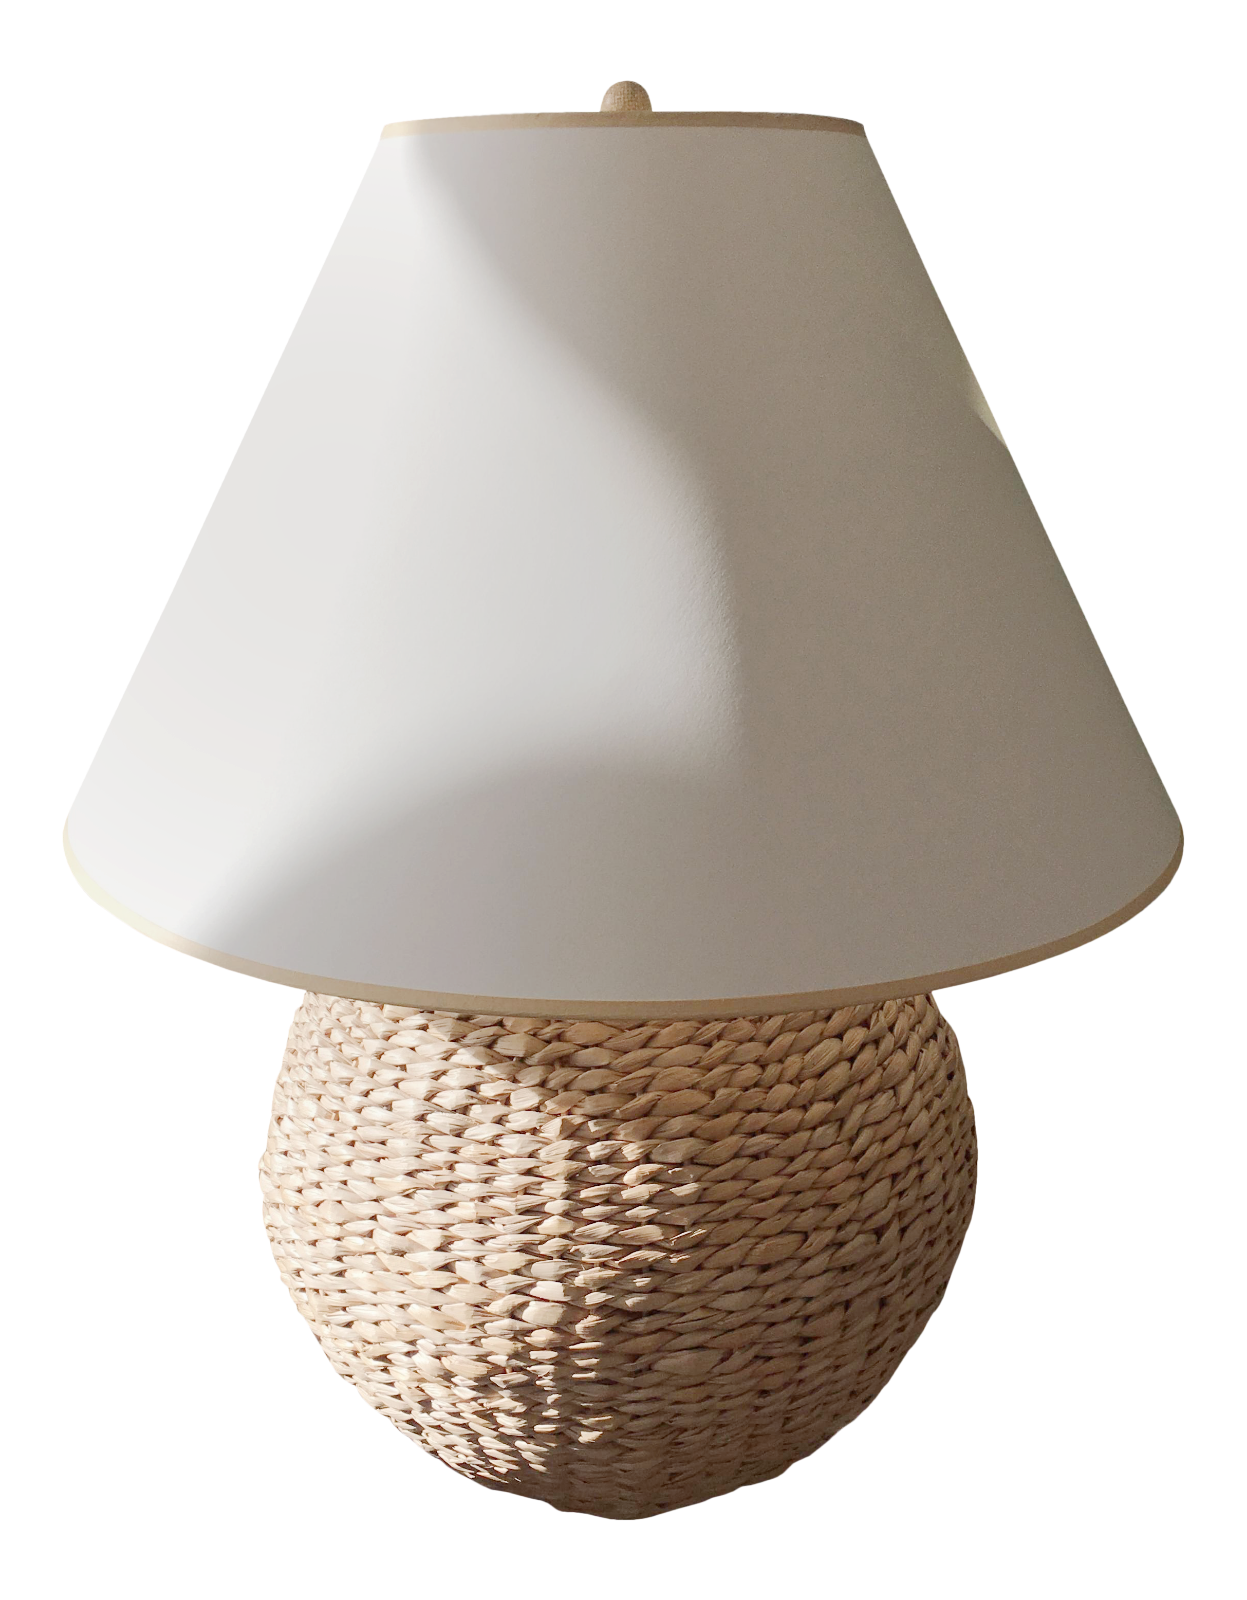 Ethan Allen Seagrass Table Lamp   Image 2 Of 6